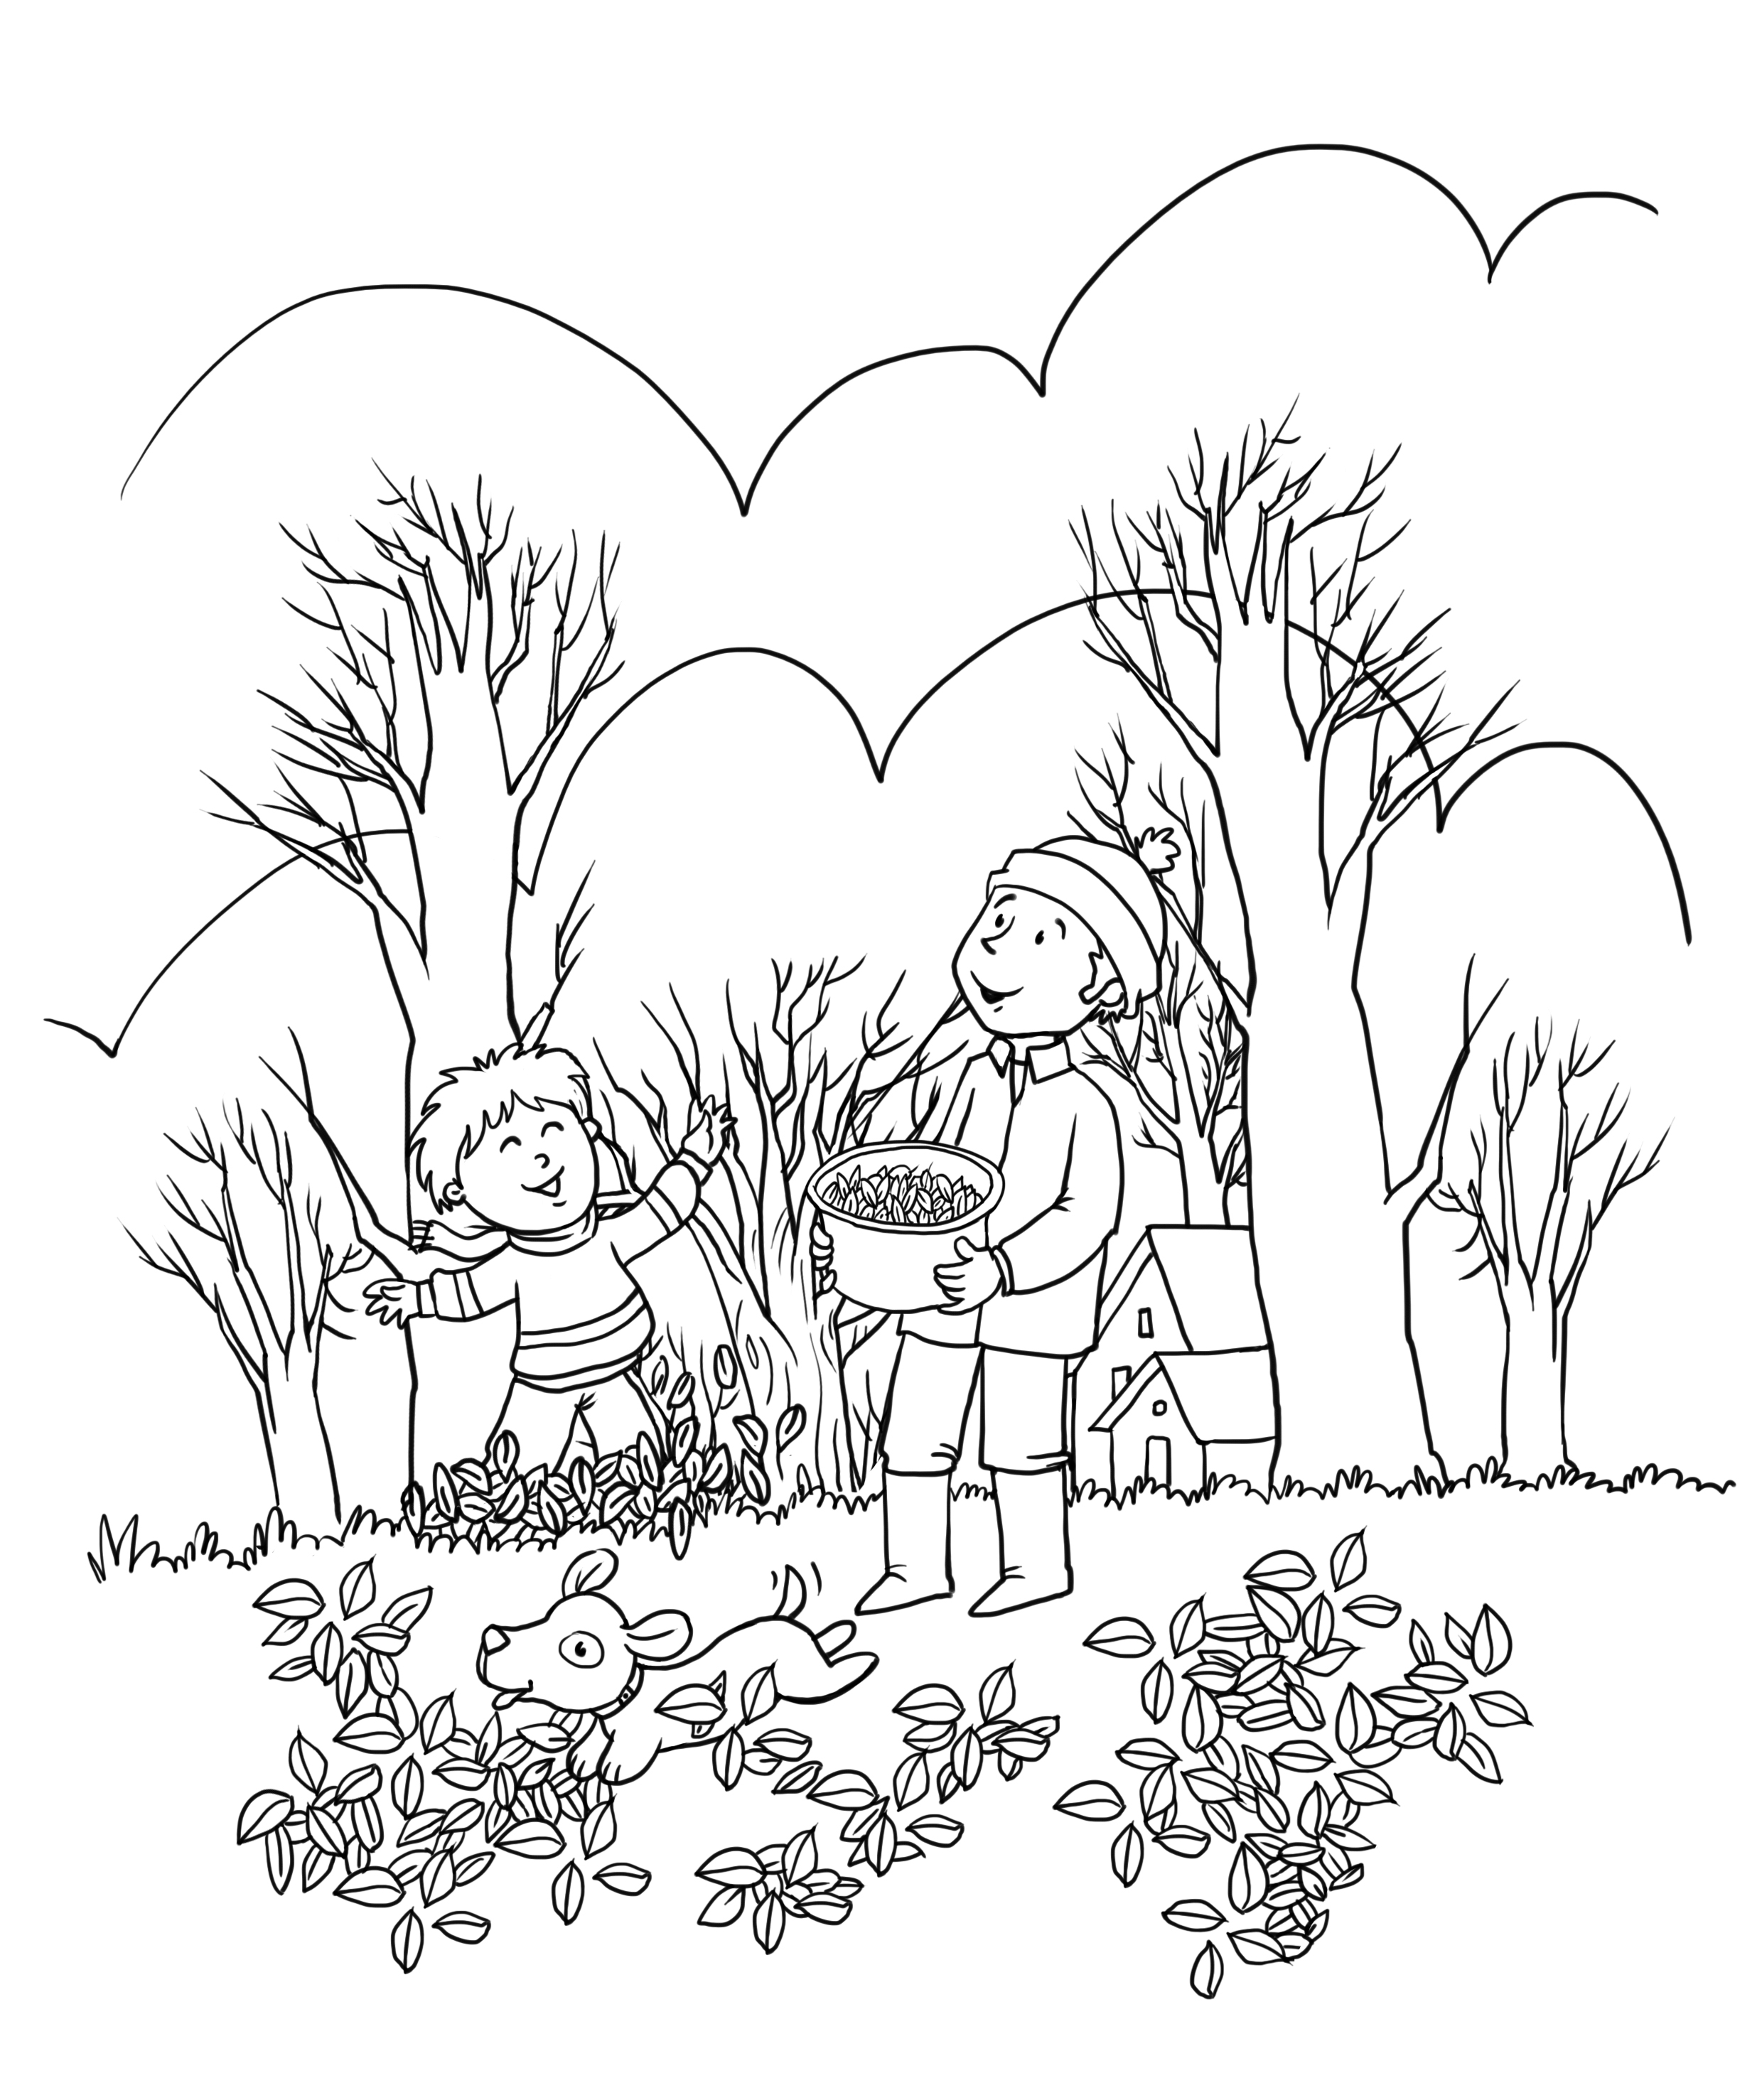 Colouring pictures of autumn season fall leaf leaves for for Coloring pages autumn season